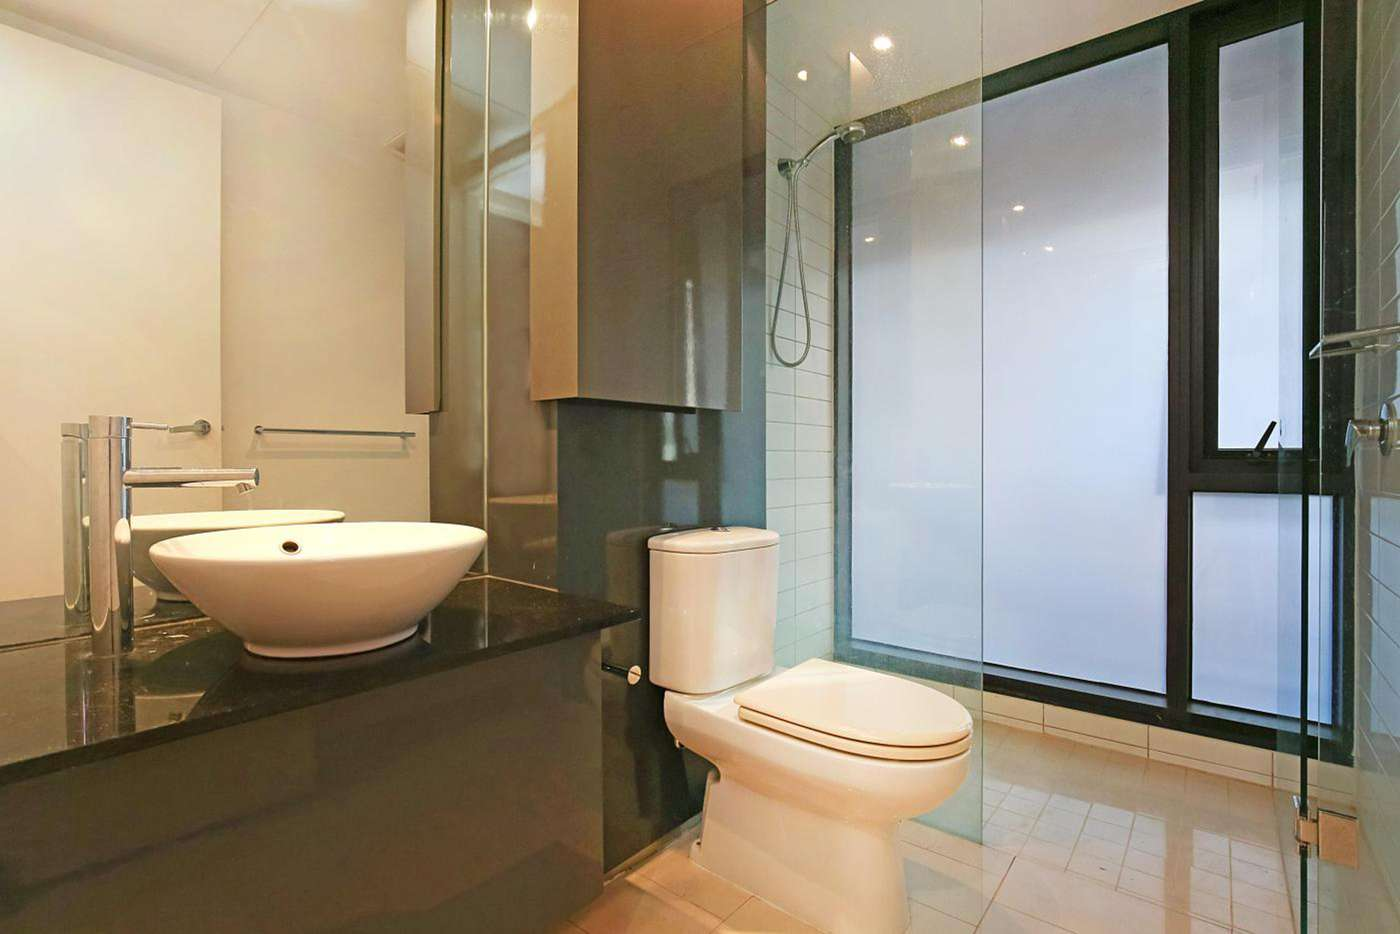 Fifth view of Homely apartment listing, 23/8 Cook Street, Southbank VIC 3006